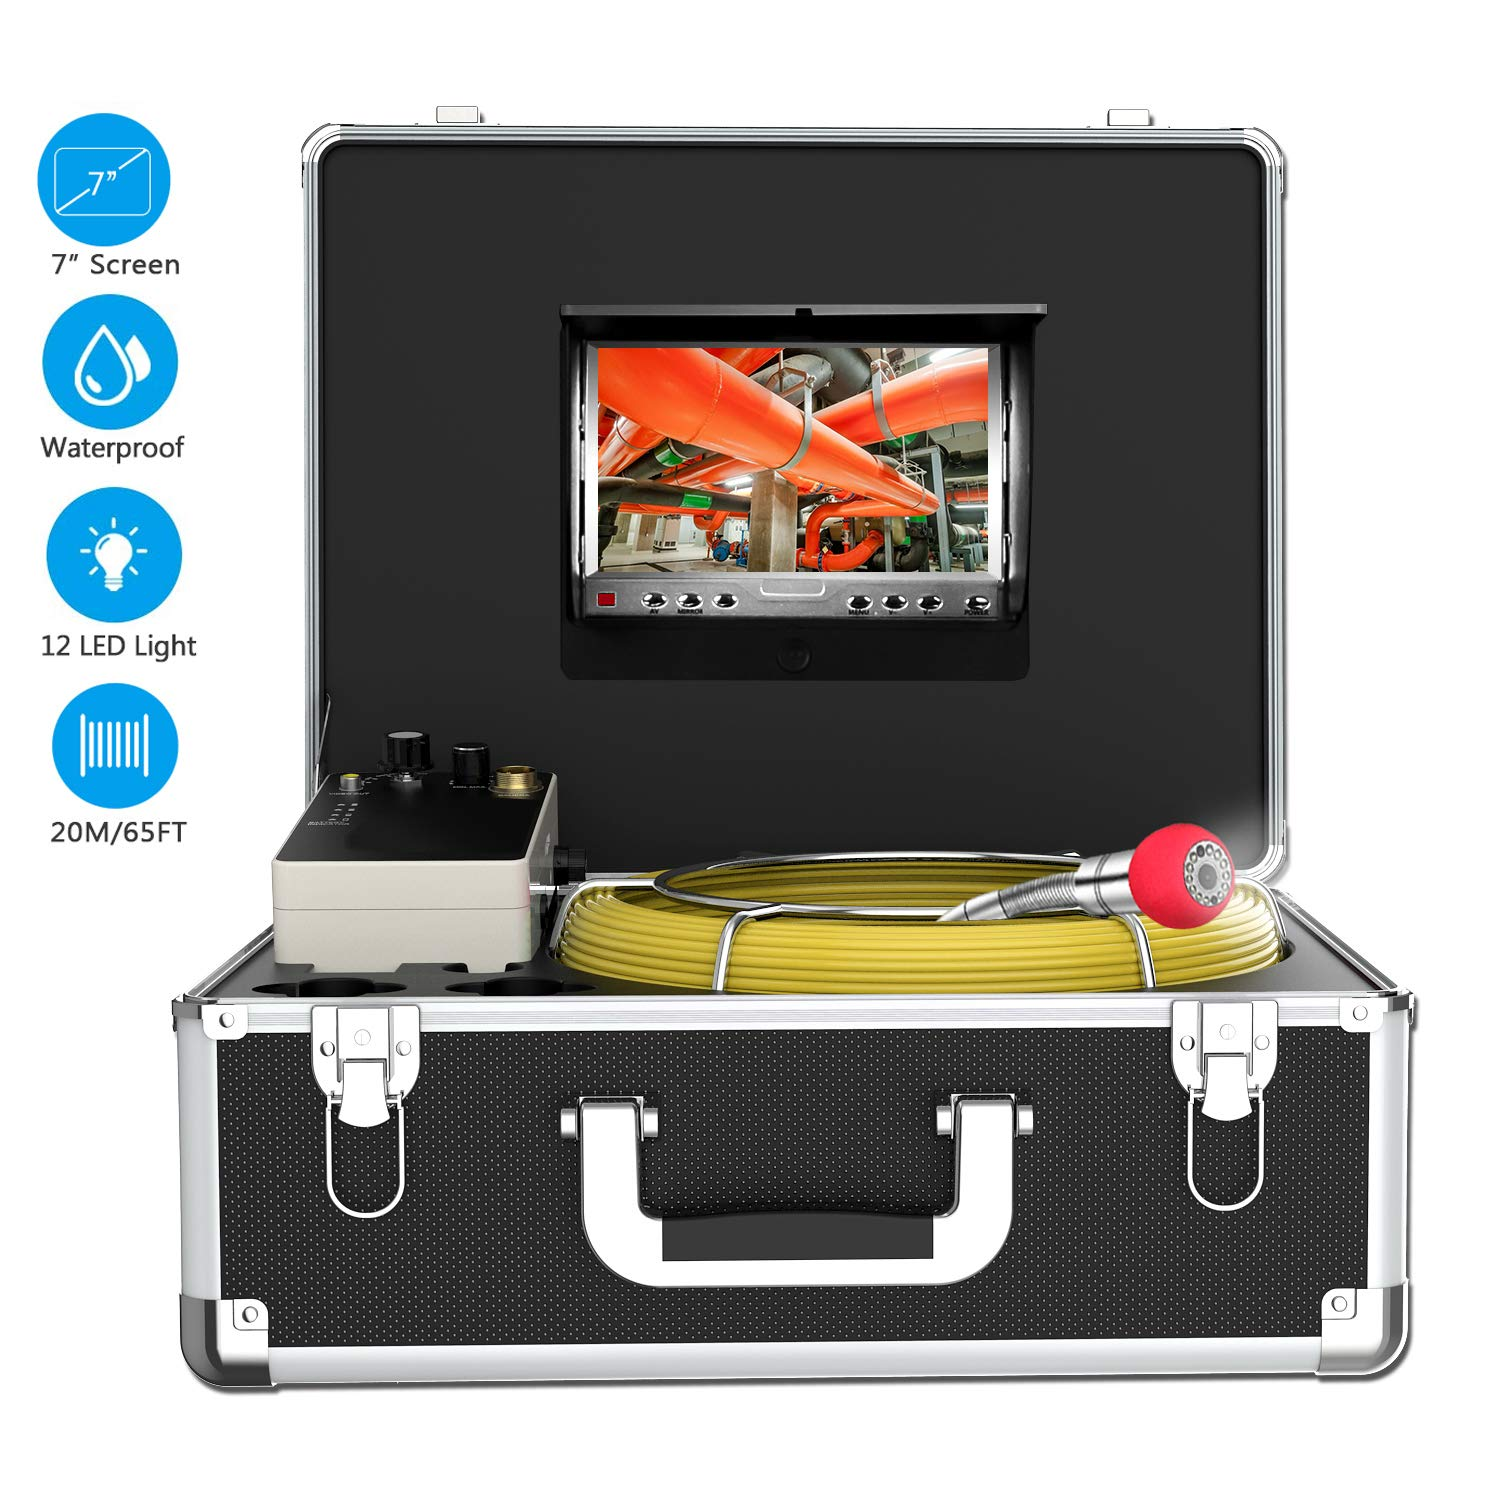 Endoscope Camera, 20M/65ft Pipe Camera 7 inch LCD Monitor Scope CameraDuct HVAC 1000TVL Sony CCD Borescope Sewer Camera Waterproof IP68Pipeline Inspection Snake Cam (7D1N-20M-Without DVR)